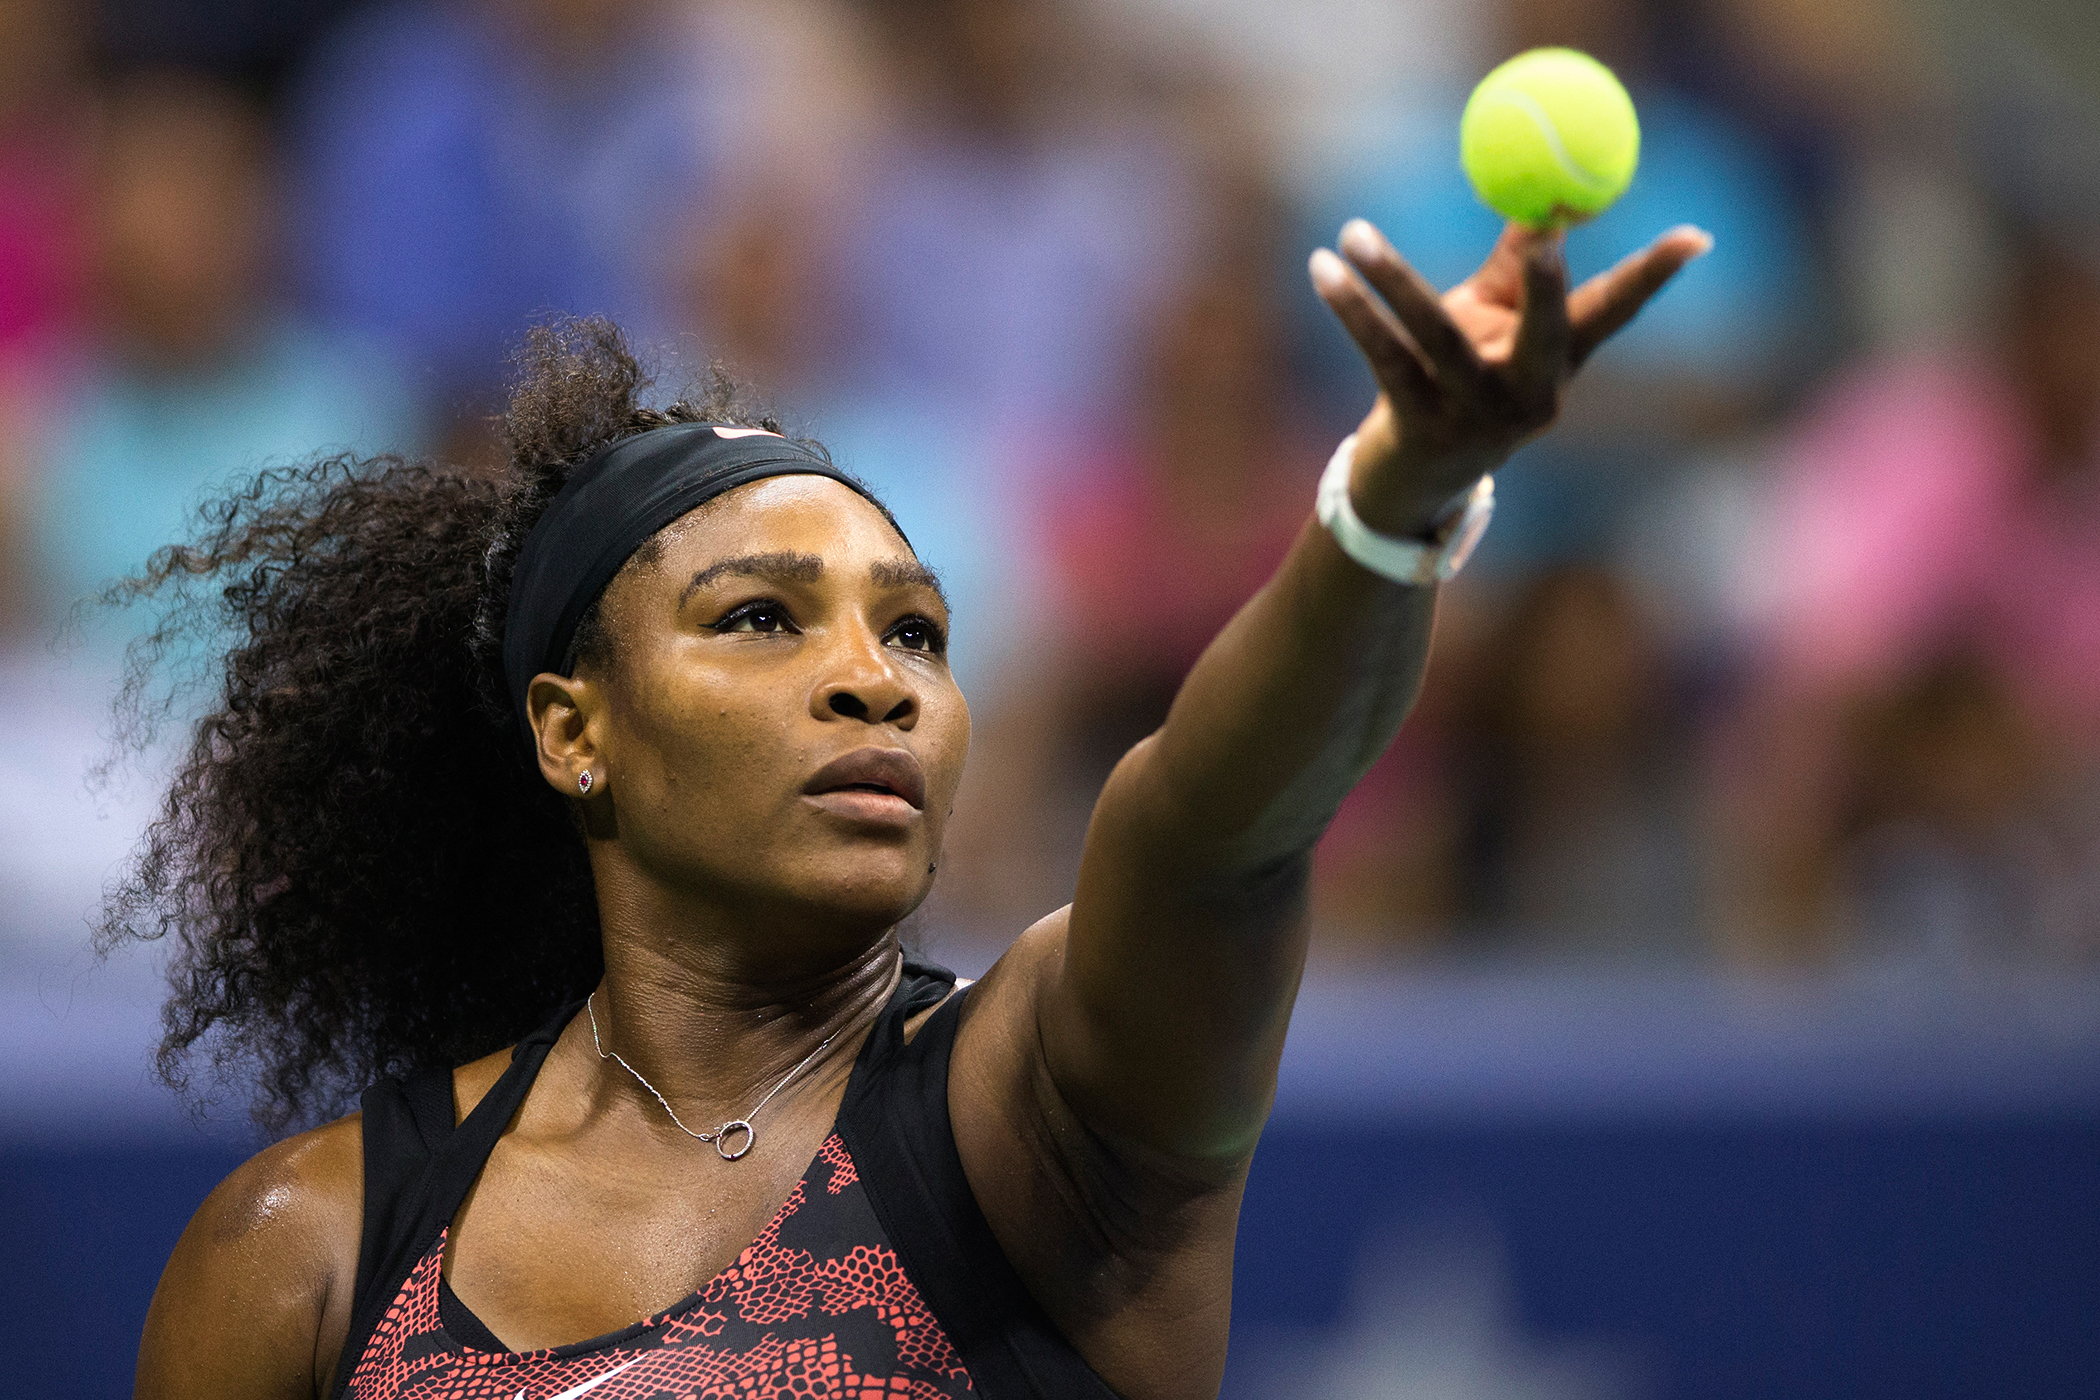 Serena Williams serves to her sister and compatriot Venus Williams during their quarterfinals match at the U.S. Open Championships tennis tournament in New York, September 8, 2015.